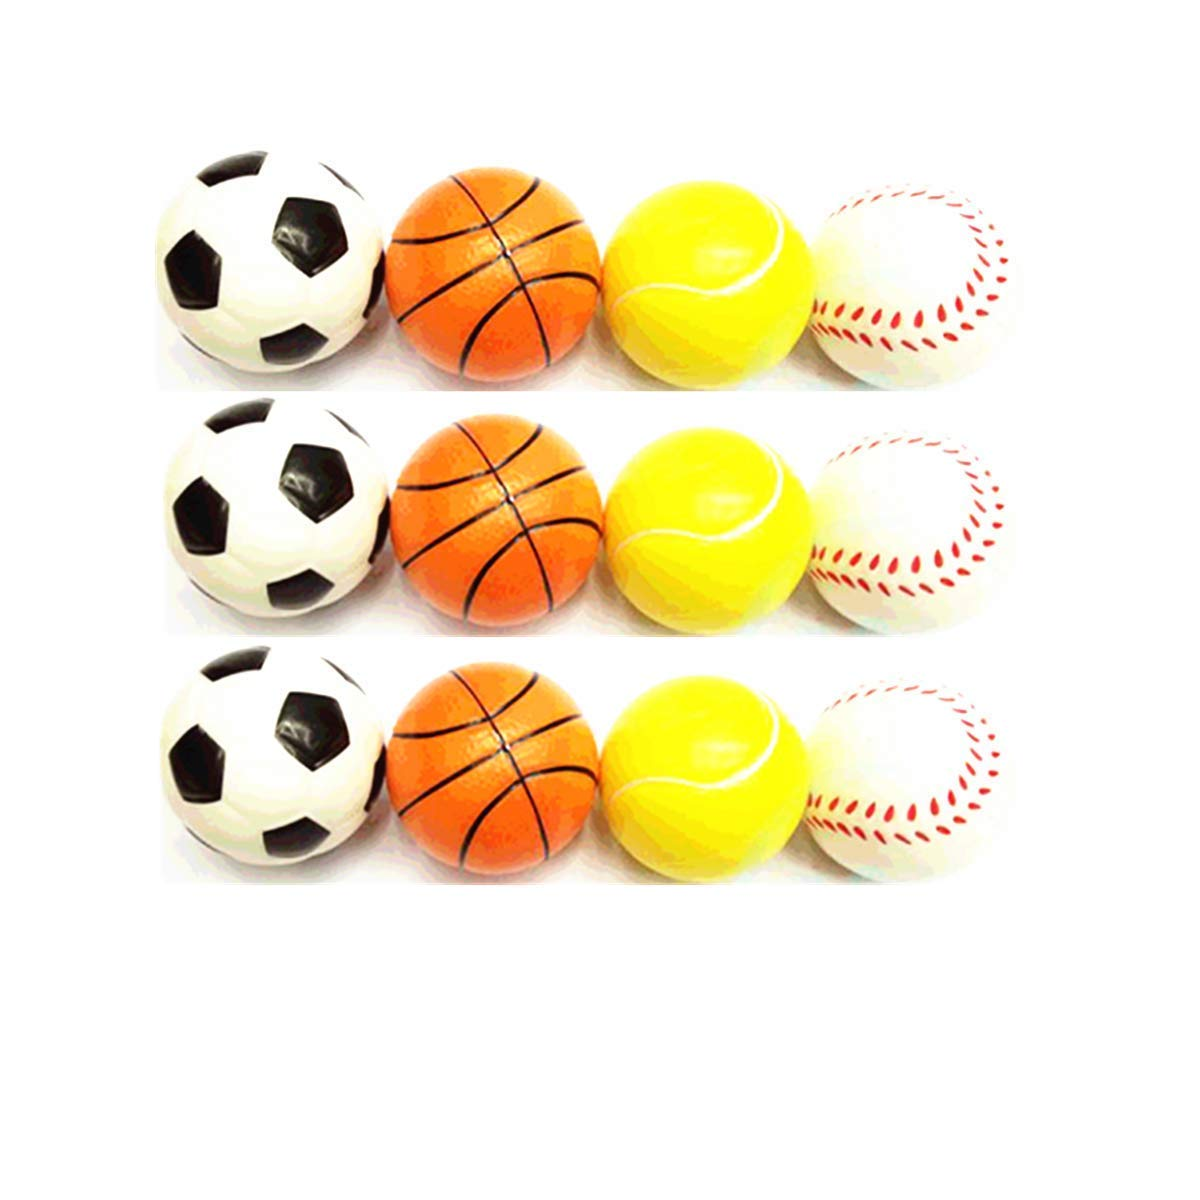 CNBest Set of 12 2.5 inches Four Type colorful Stress Balls Football Basketball Tennis Baseball Soft Fun Toy Gift Bundle Ball for Kids and Adults